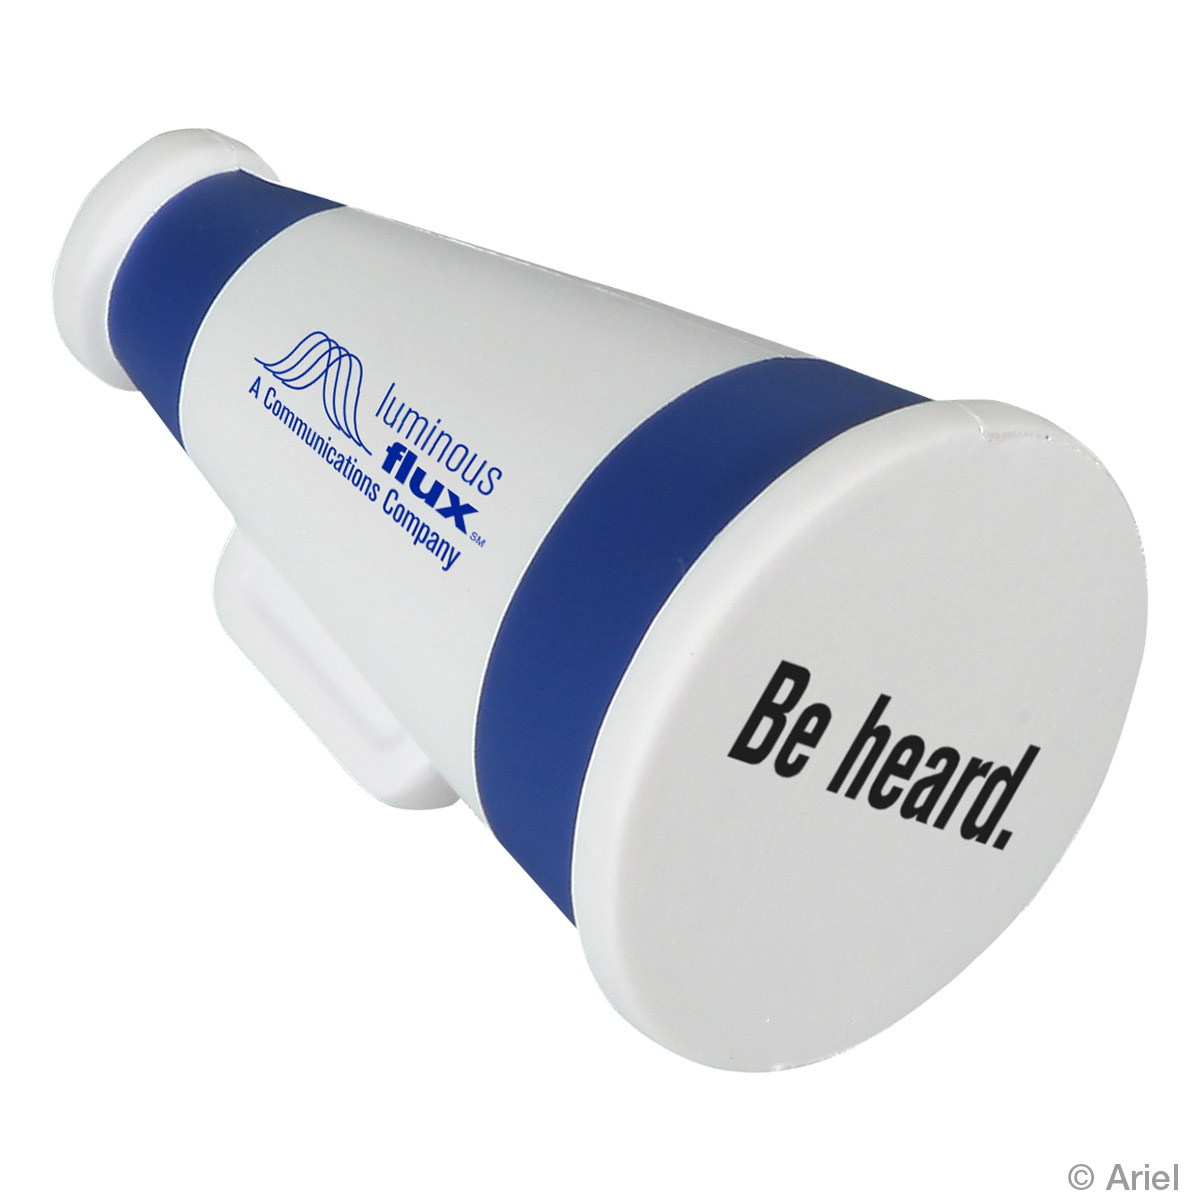 Megaphone Stress Reliever, LGS-MP11 - 1 Colour Imprint